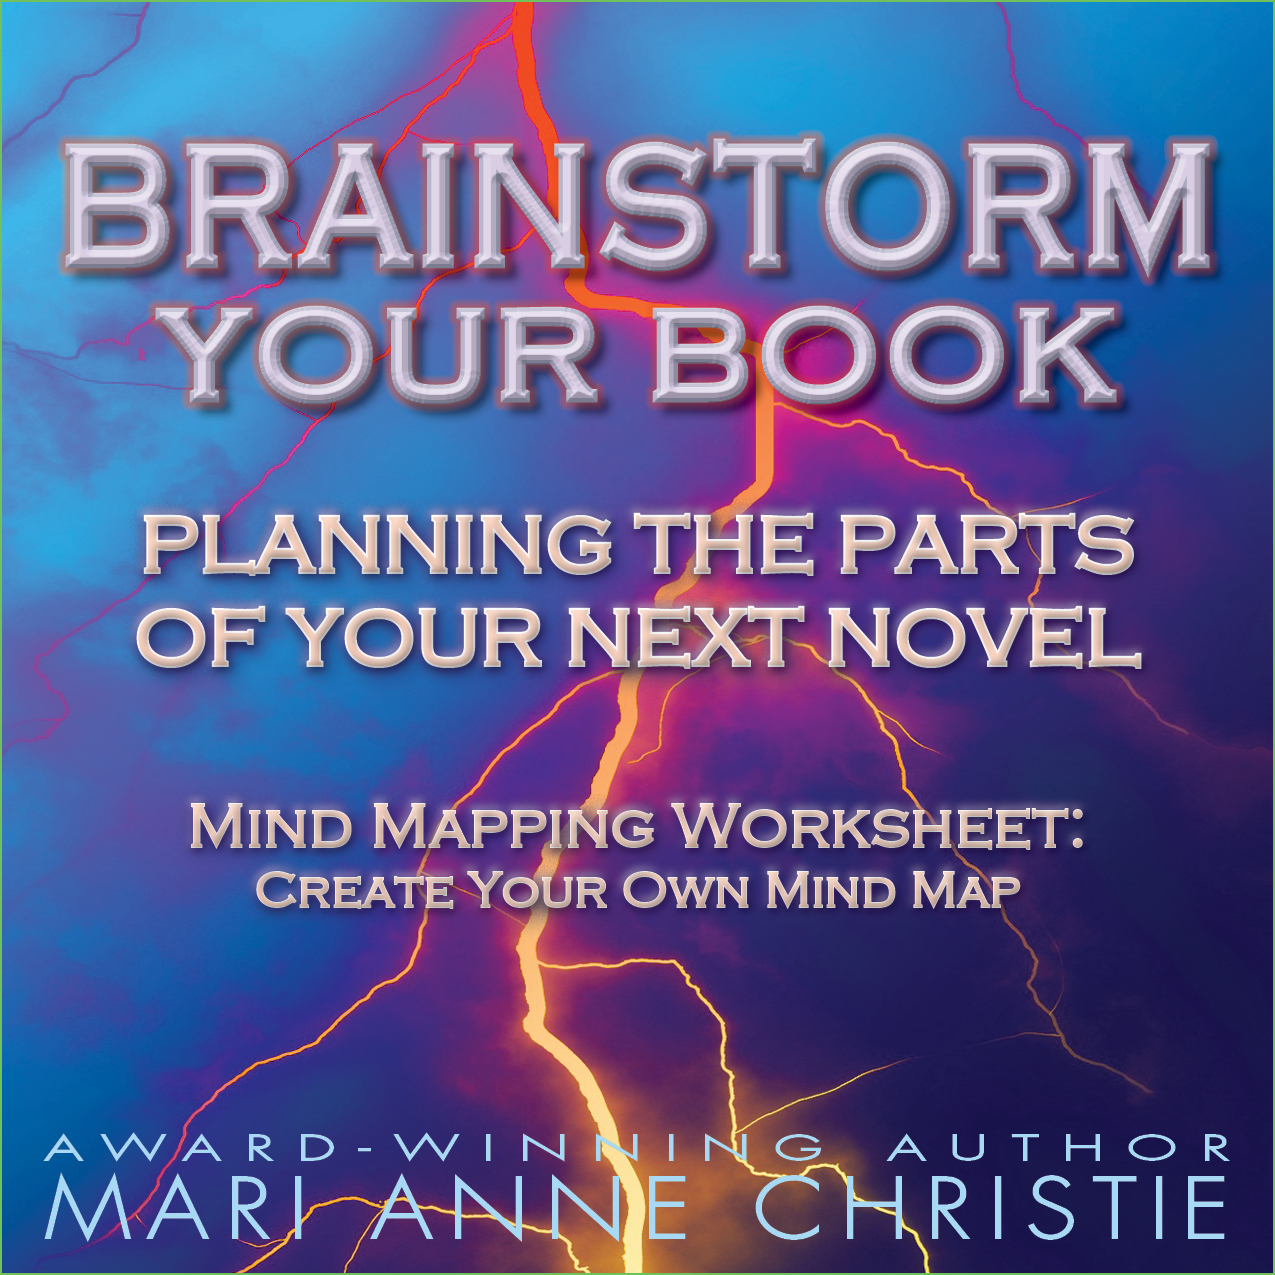 Brainstorm Your Book Mari Anne Christie